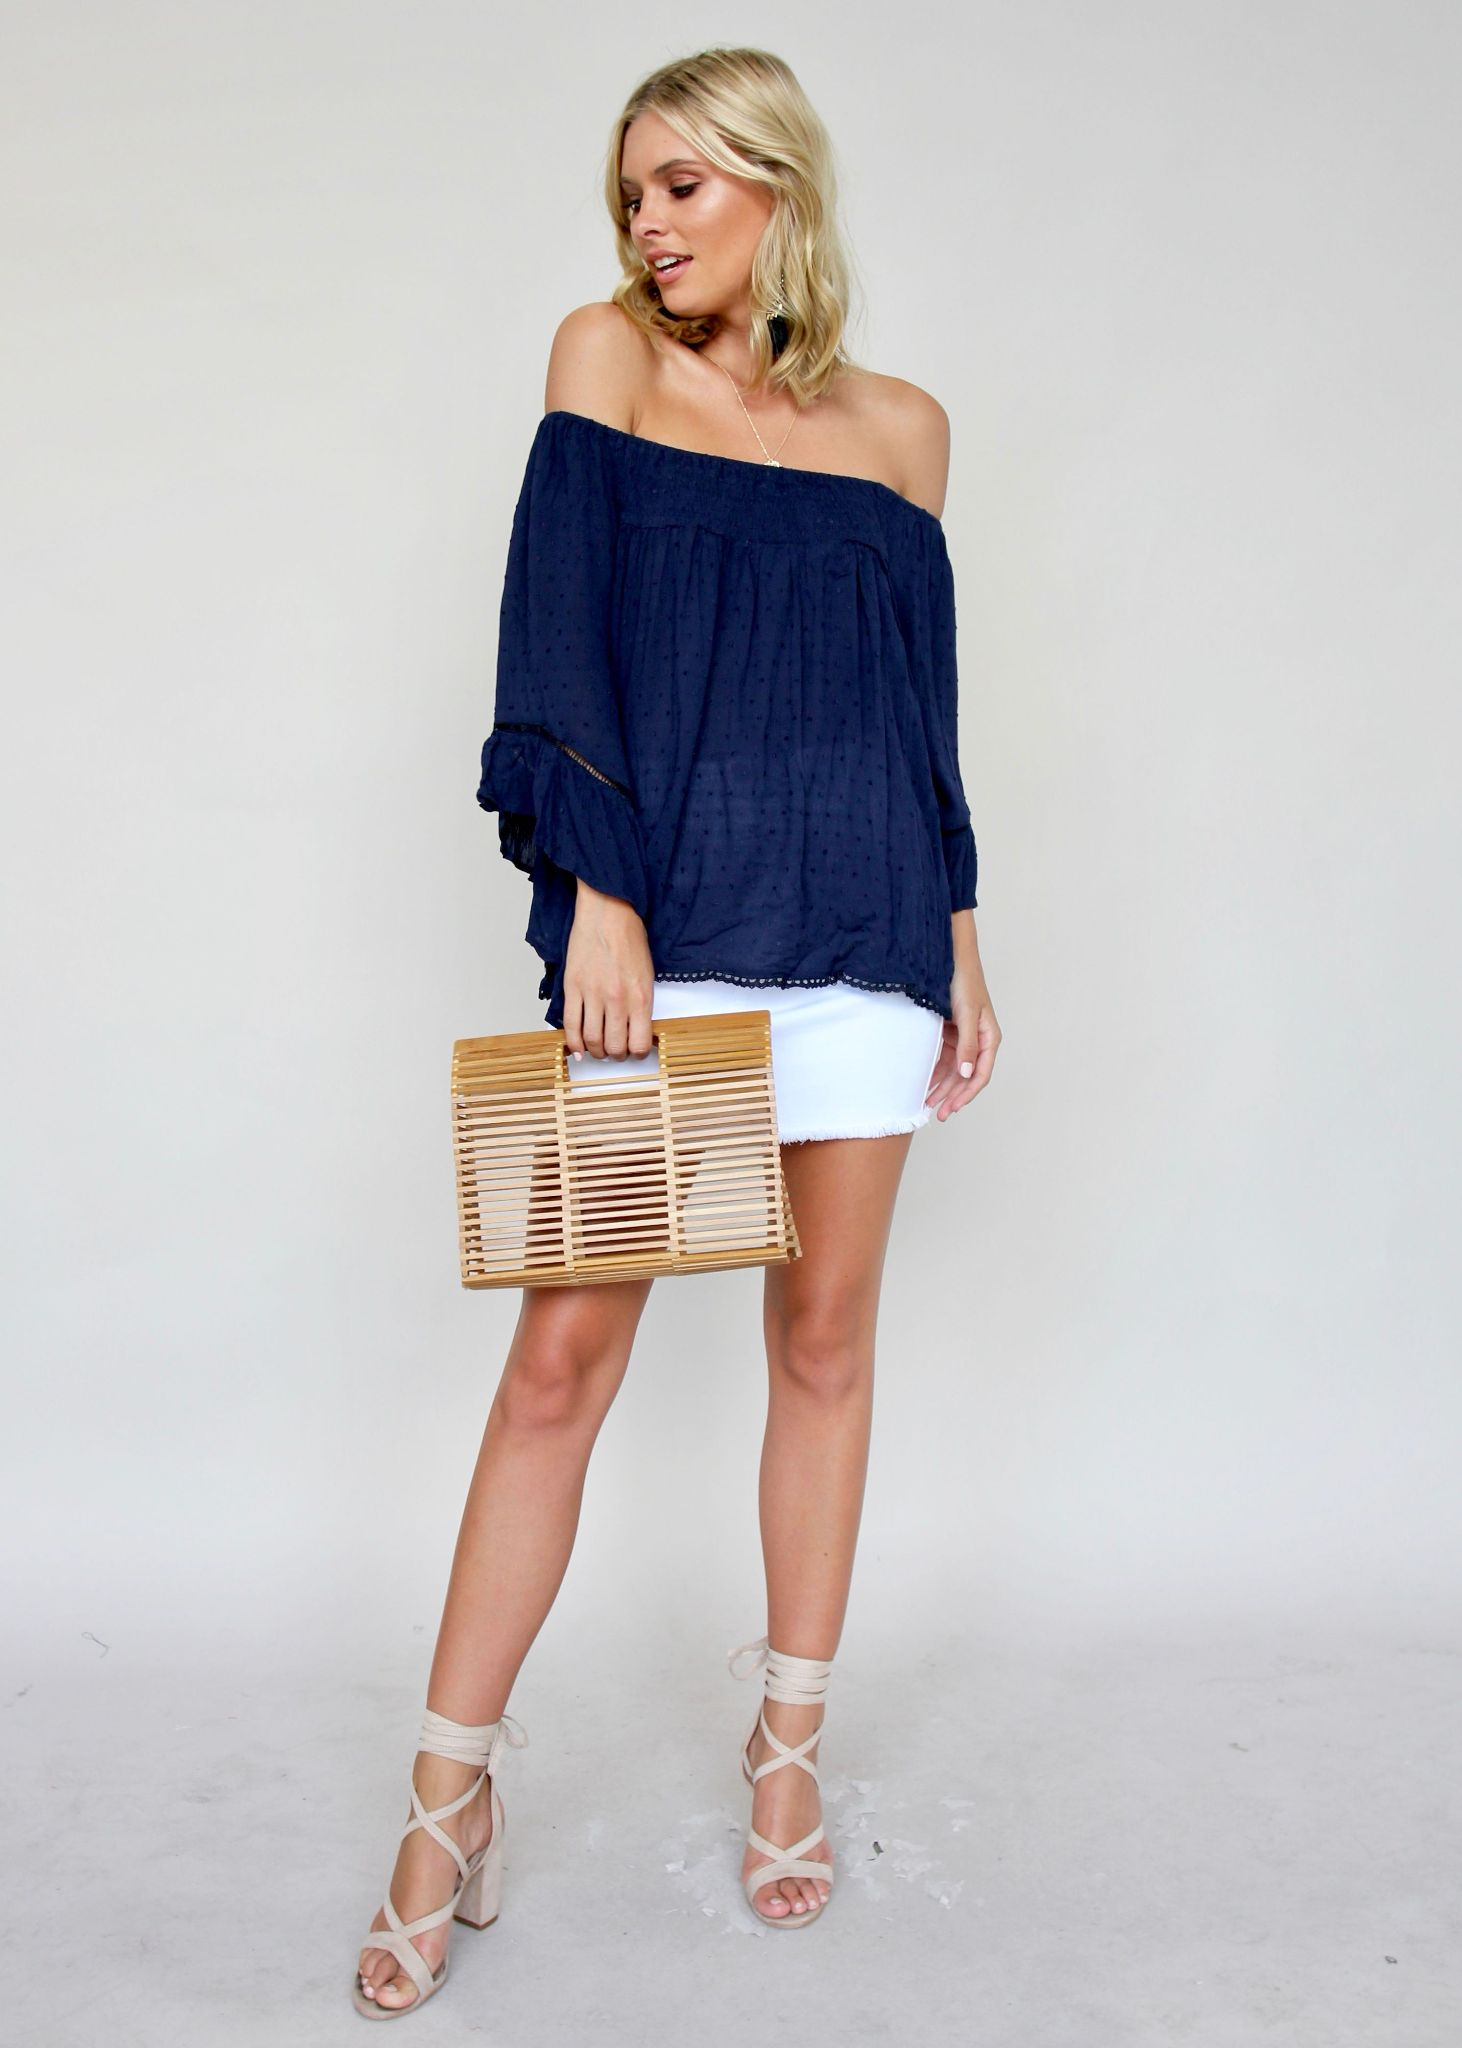 Sugar Night Off Shoulder Top - Navy